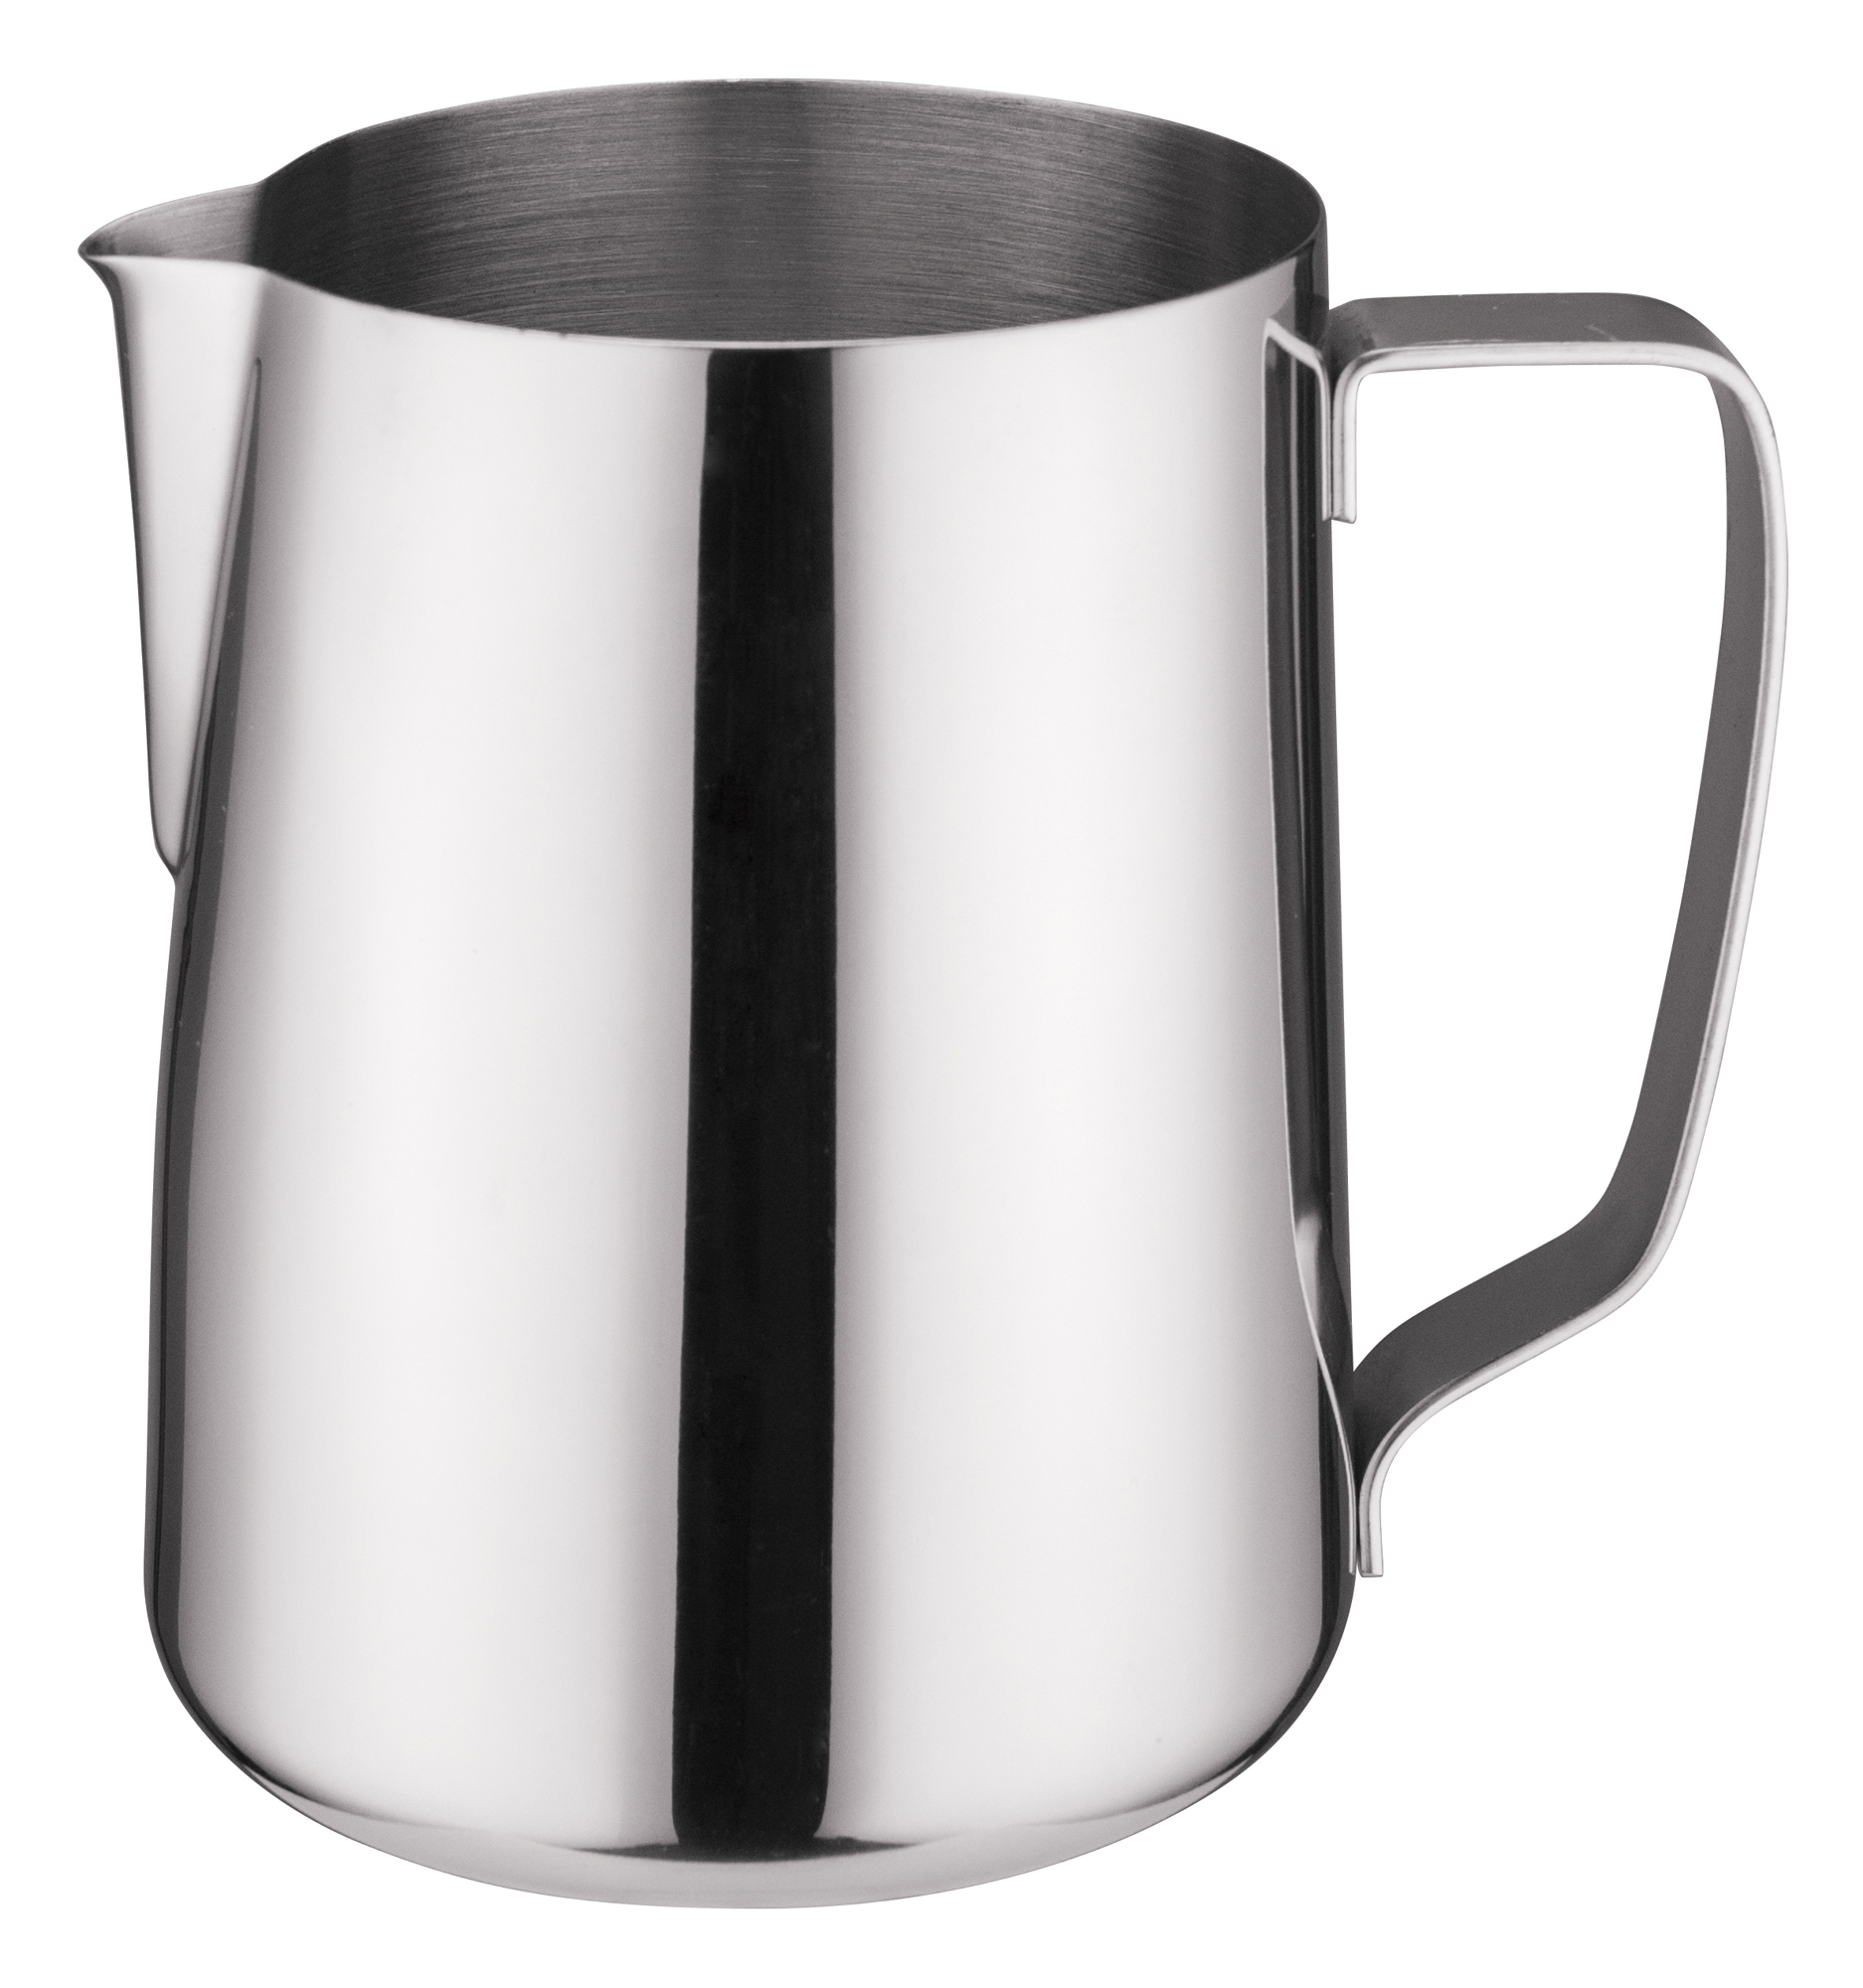 Winco WP-50 pitchers-stainless steel